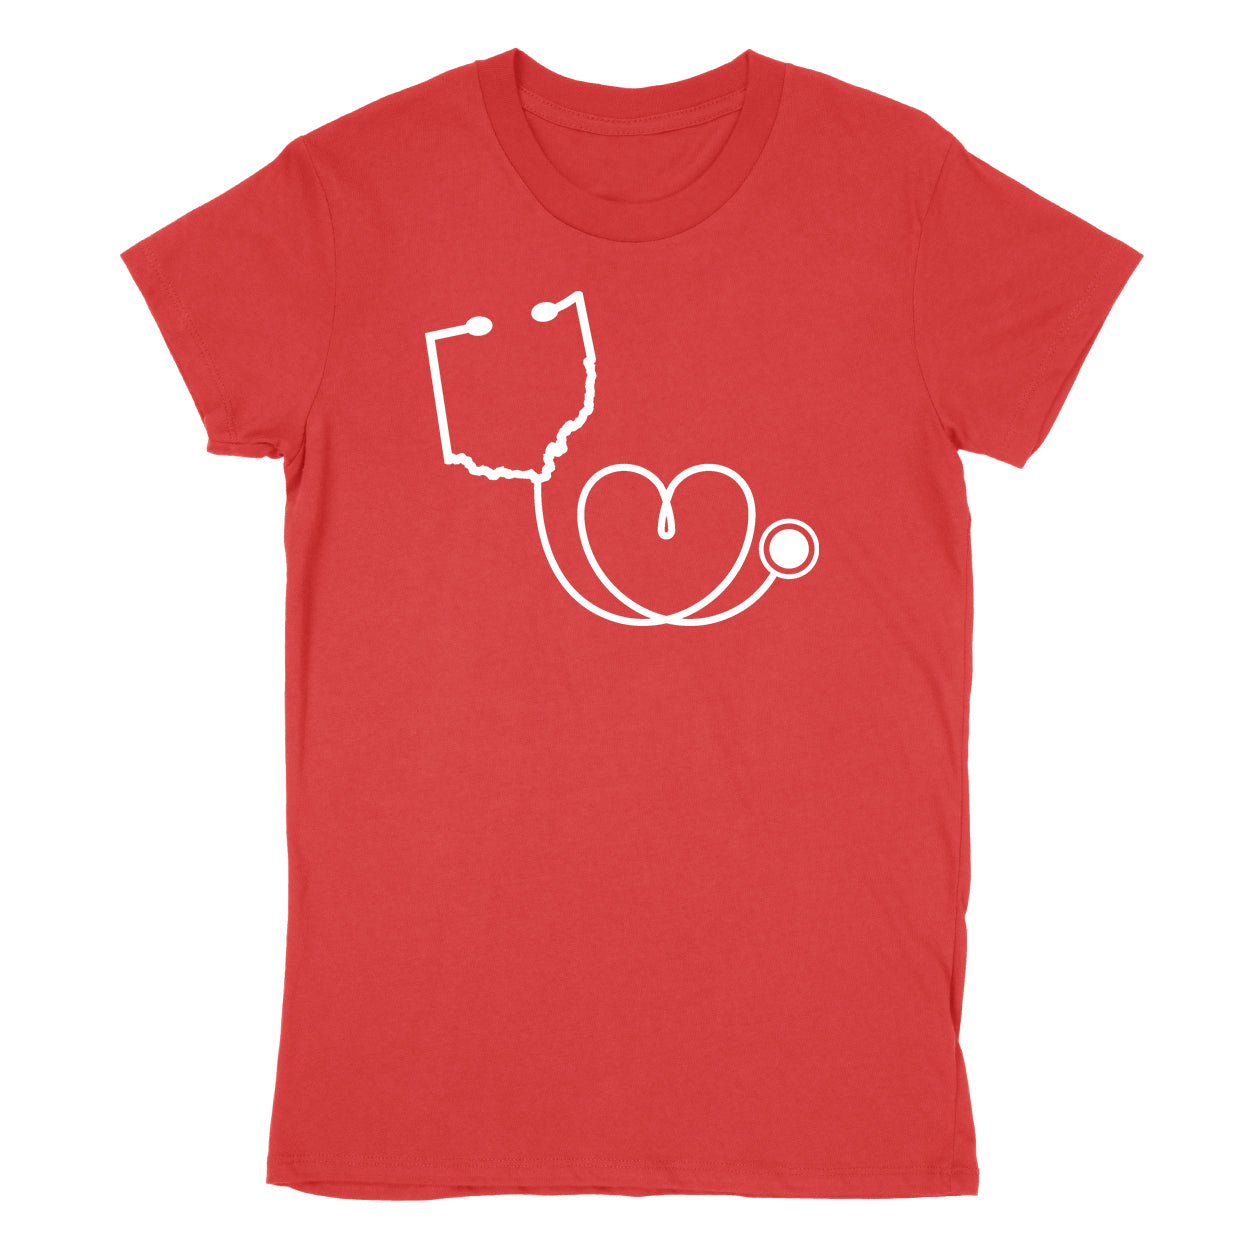 Ohio Healthcare - Donation - Women's T-Shirt - Clothe Ohio - Soft Ohio Shirts